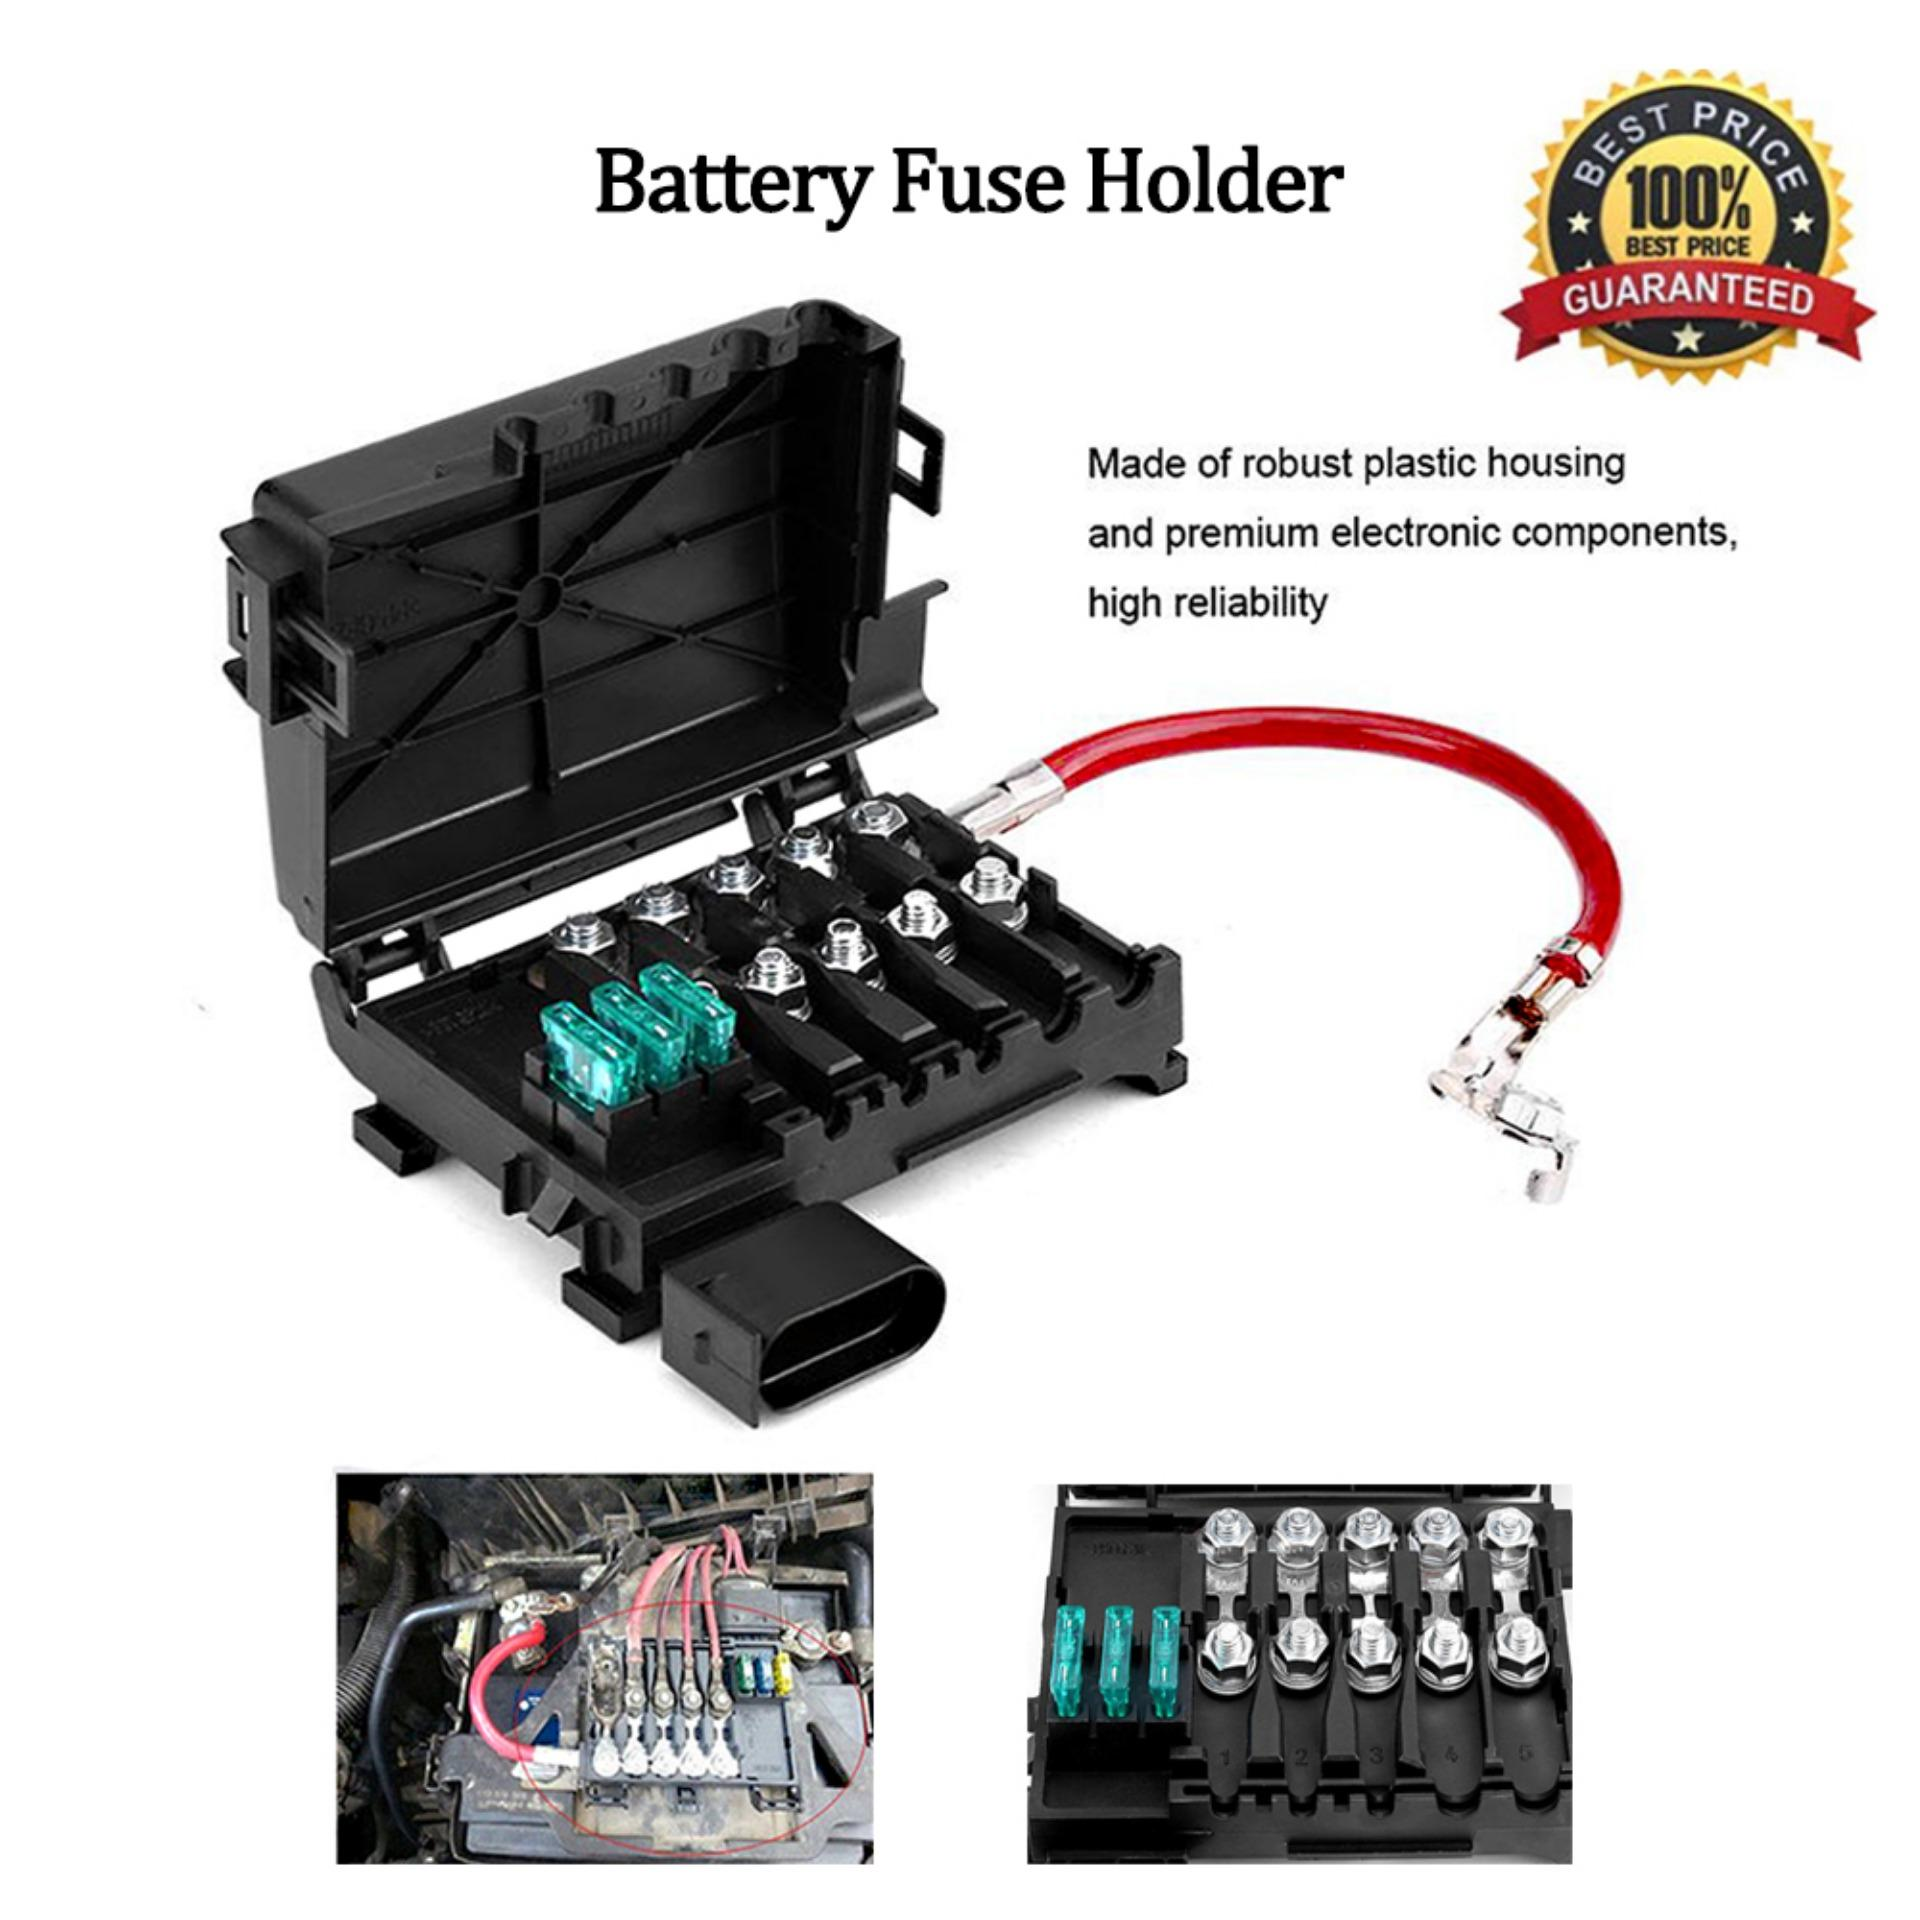 hight resolution of battery fuse box car battery fuse box holder terminal for vw jettaproduct details of battery fuse